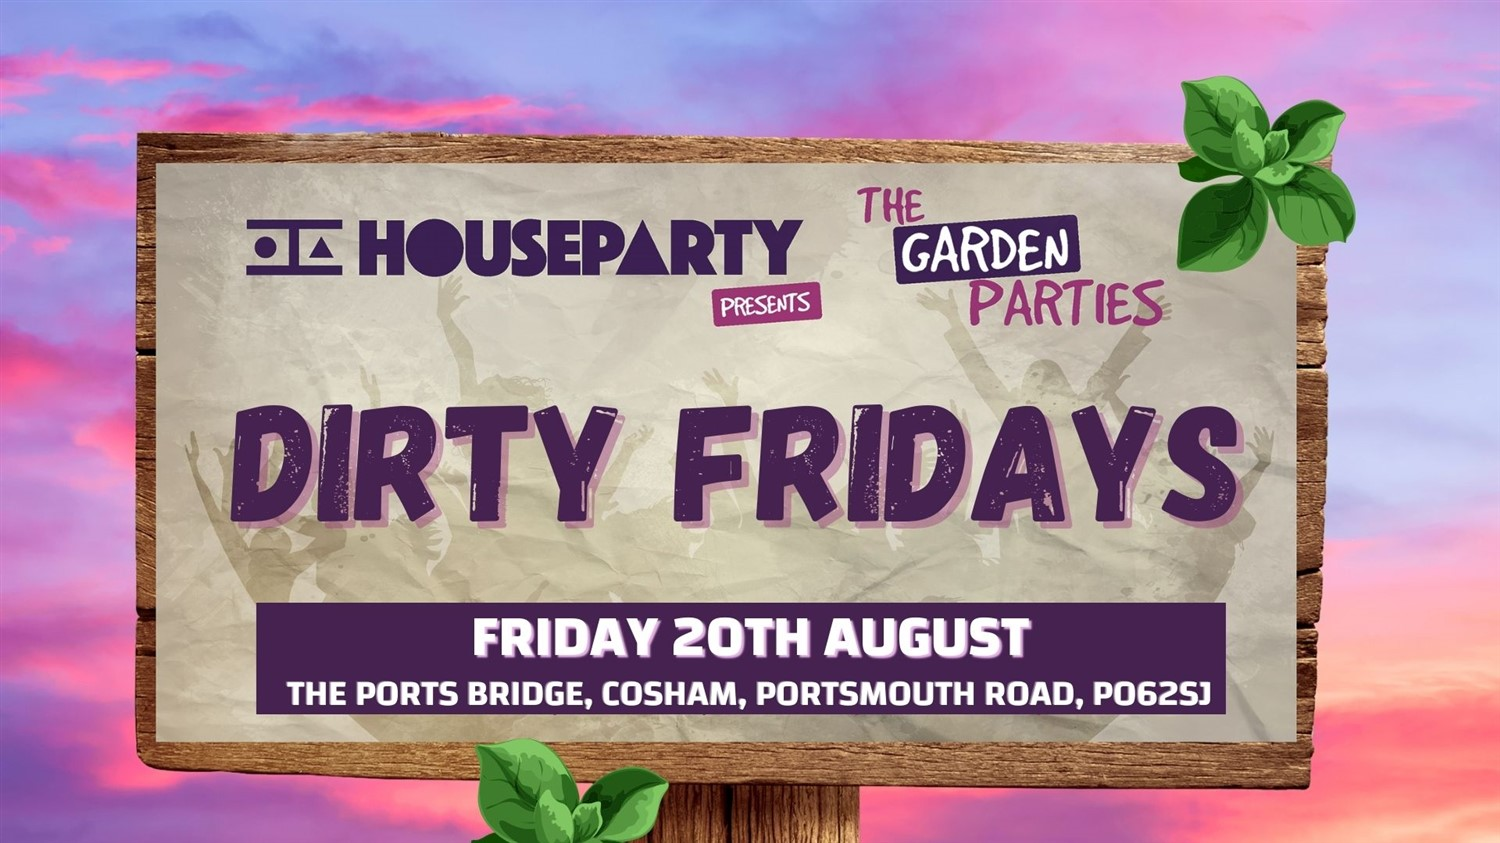 House Party Presents: Dirty Friday's Friday 20th August on Aug 20, 20:00@The Portsbridge Pub - Buy tickets and Get information on House Party Europe Ltd